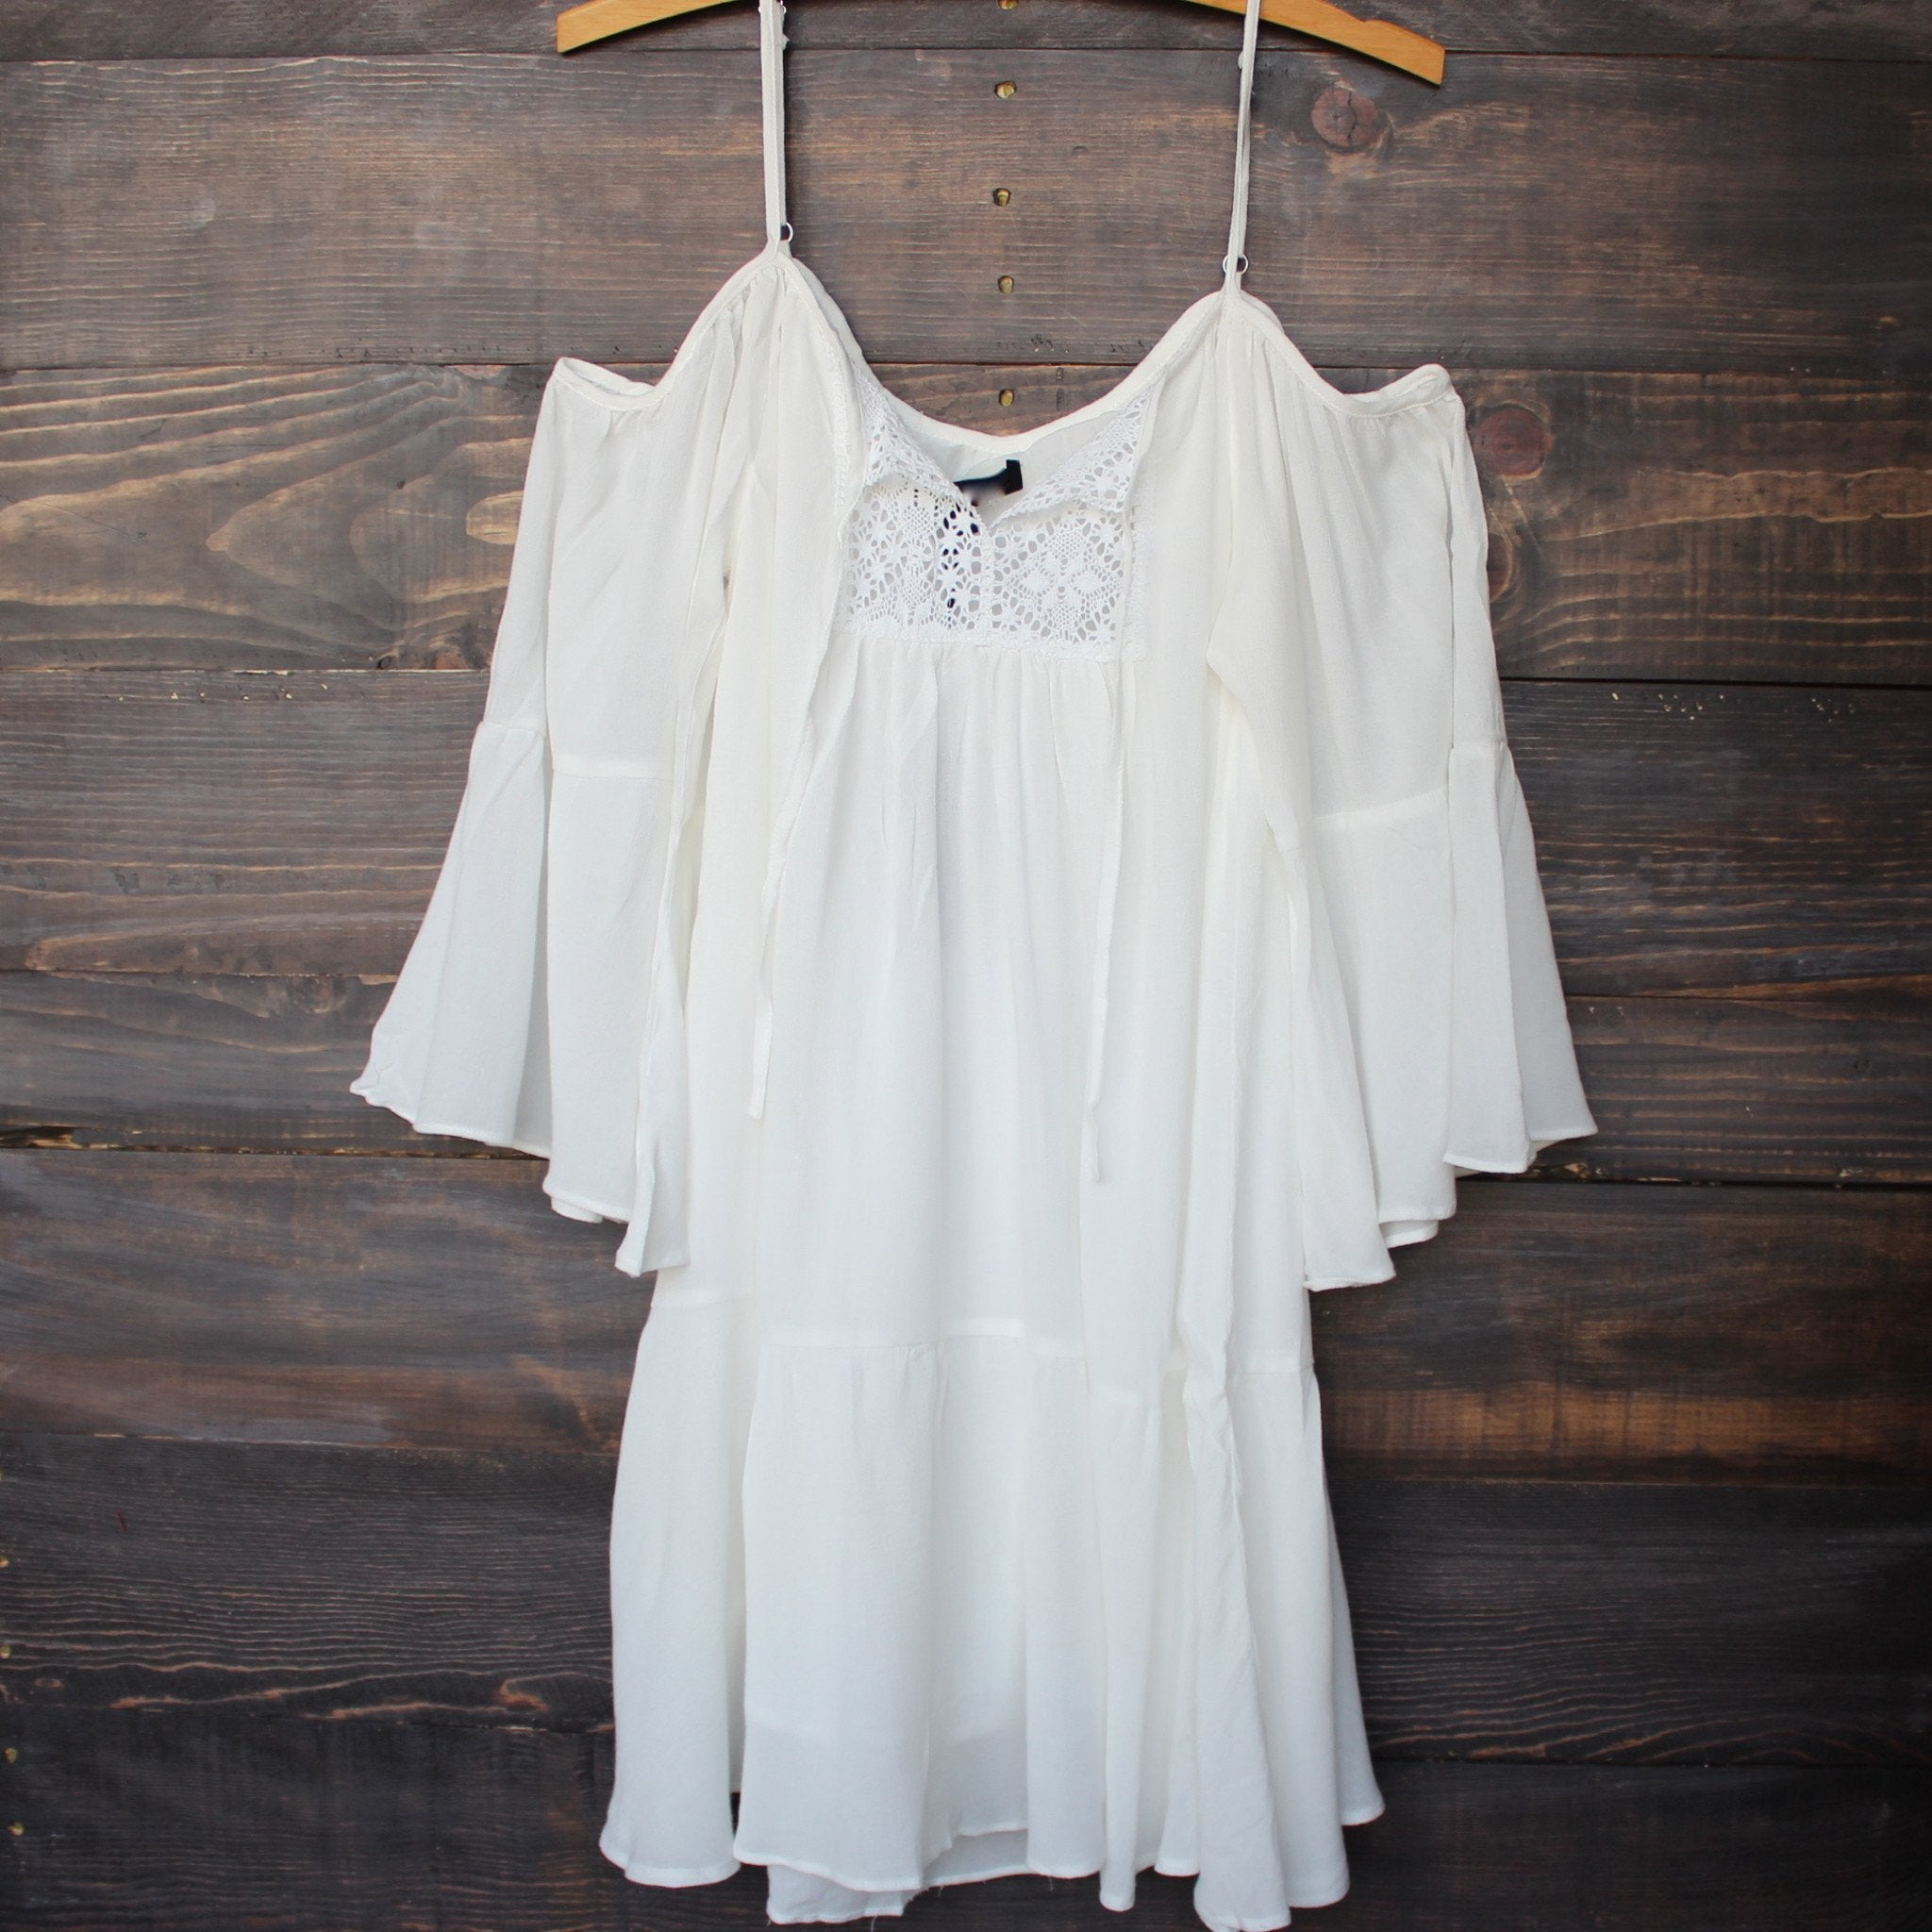 bohemian cold shoulder dress - white - shophearts - 1